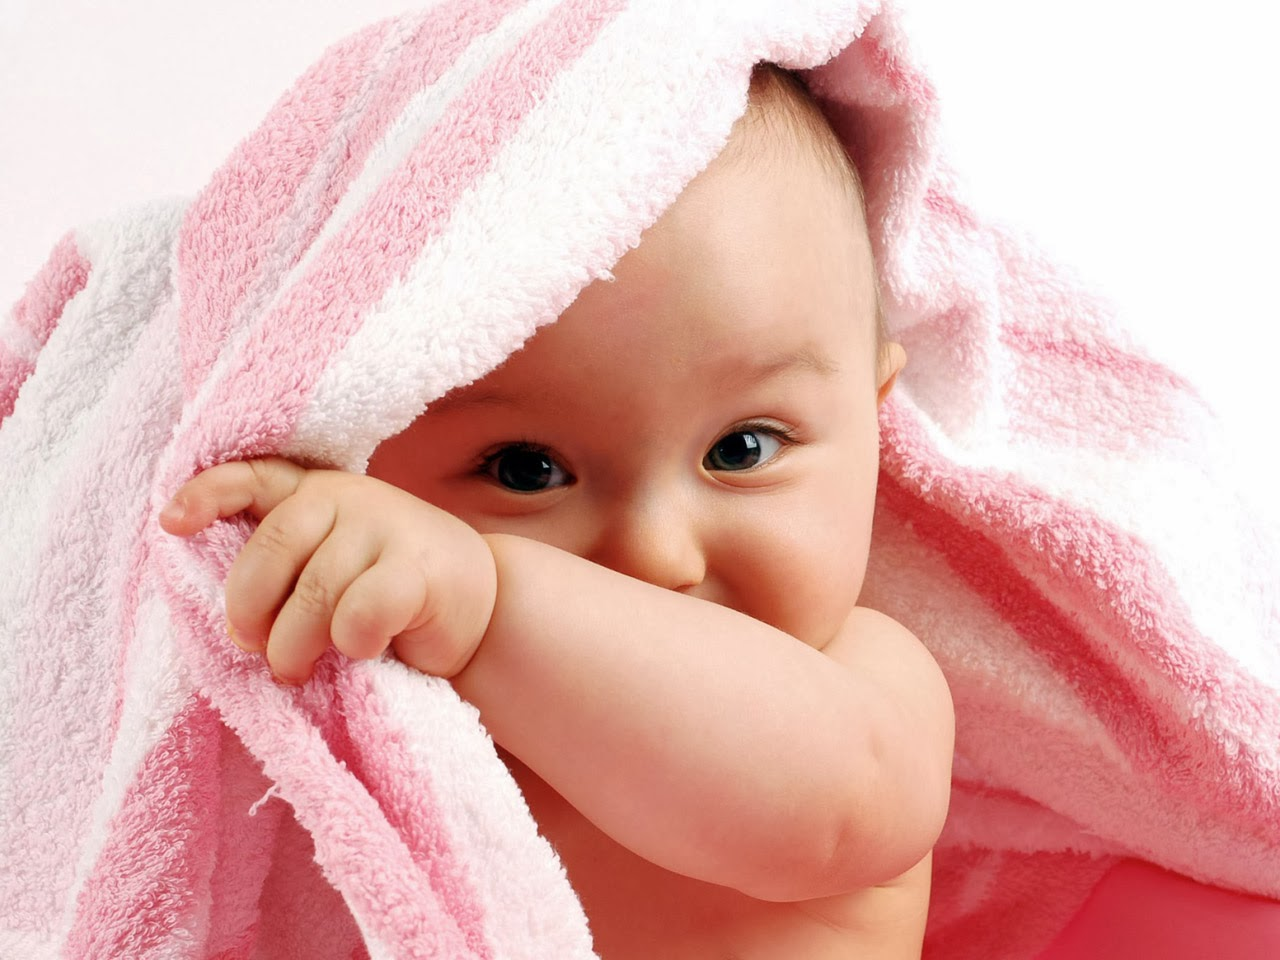 http://www.funmag.org/pictures-mag/cute-babies/cute-babies-walllpapers-12-photos/